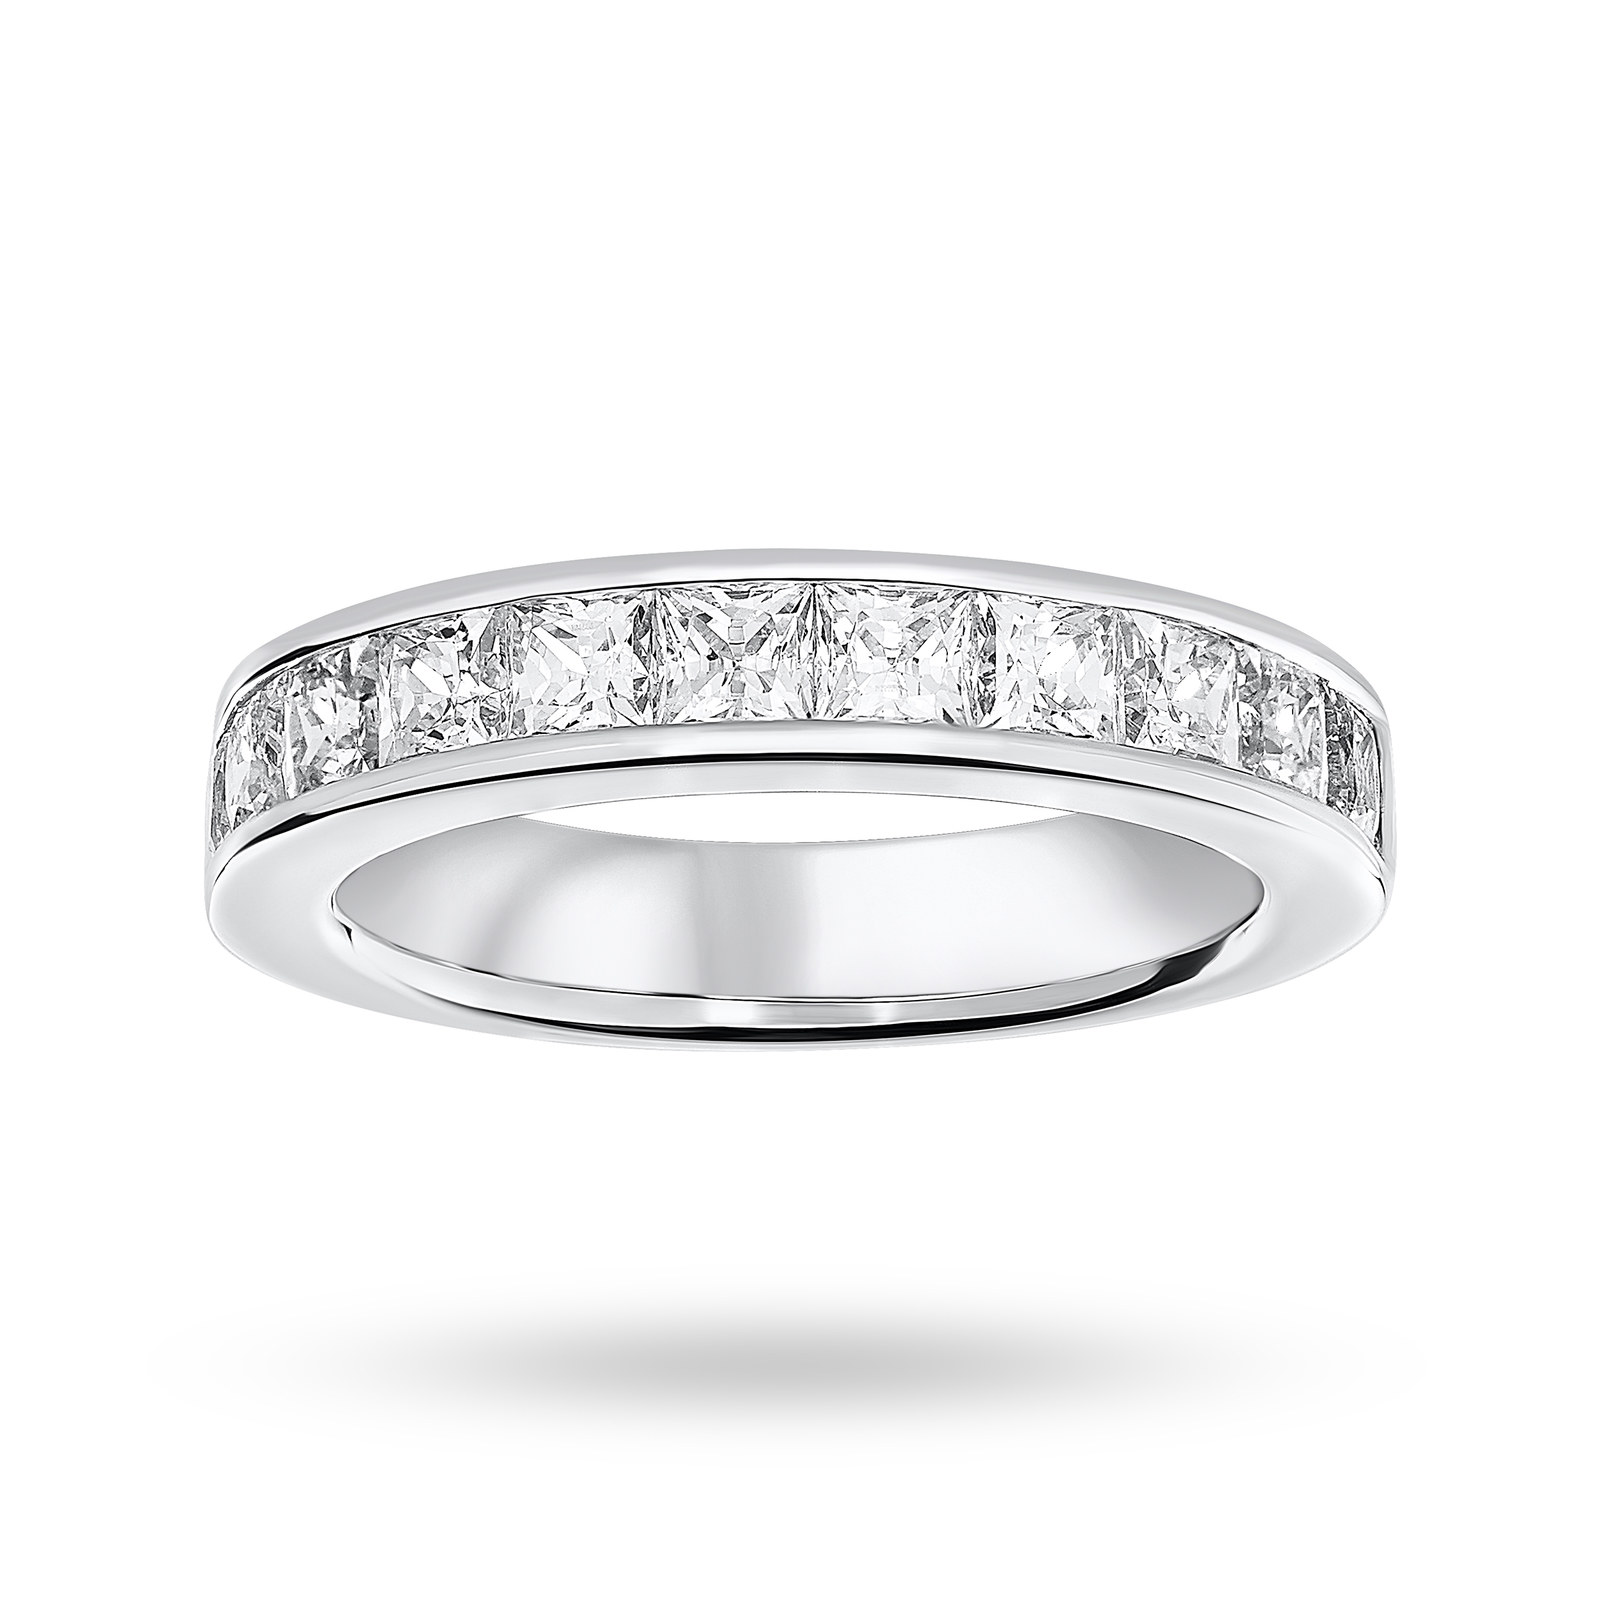 Platinum 2.00 Carat Princess Cut Half Eternity Ring